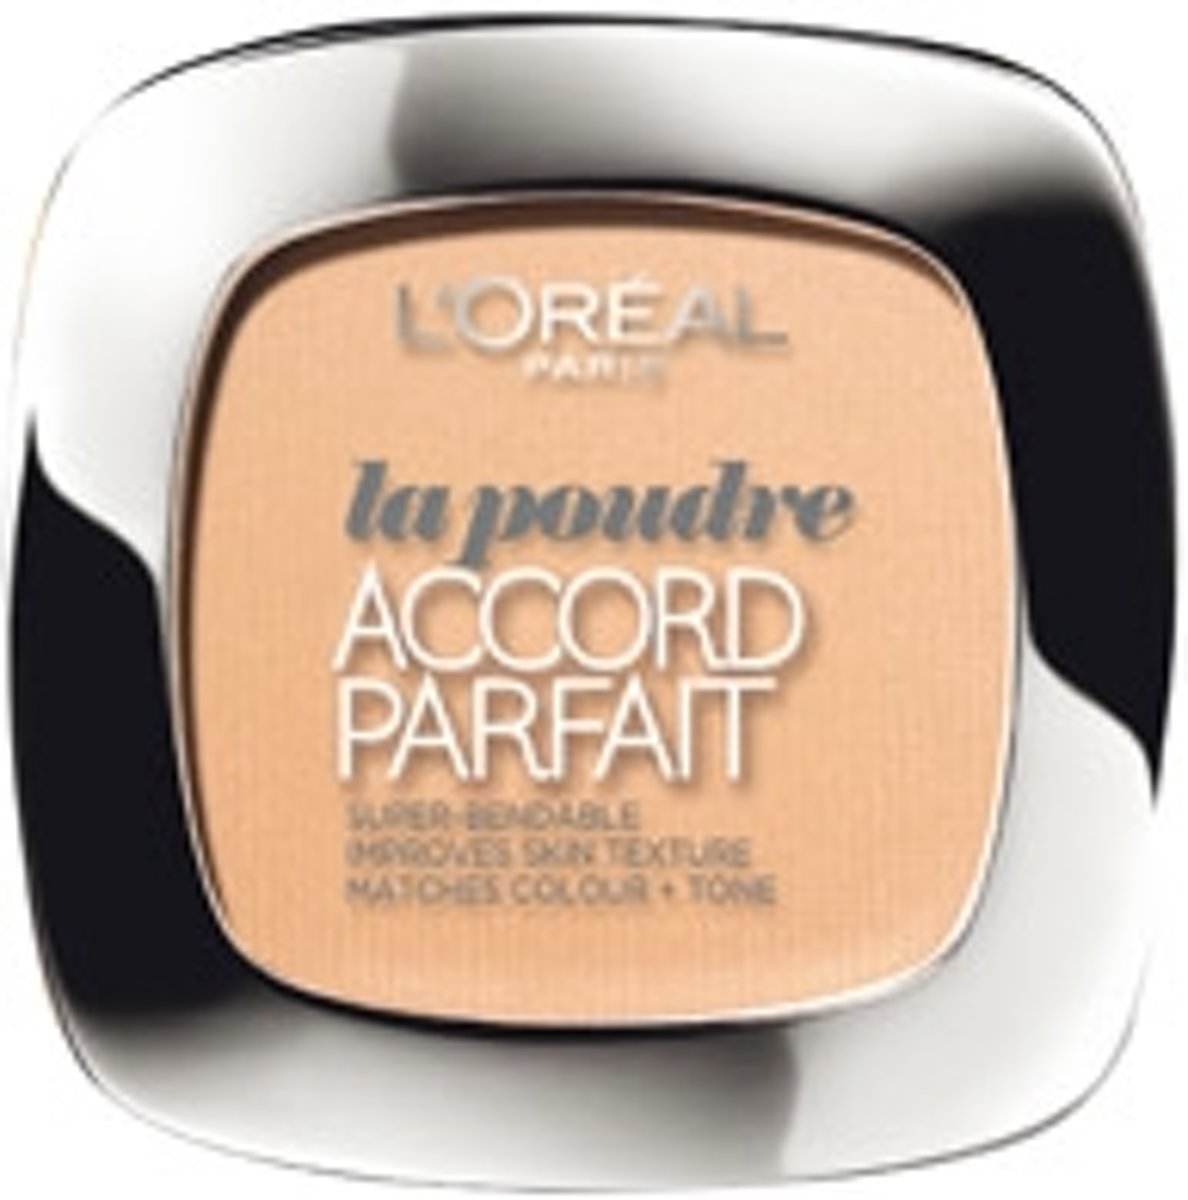 LOréal Paris Make-Up Designer Accord Parfait - R5/C5 Sable Rosé - Poeder